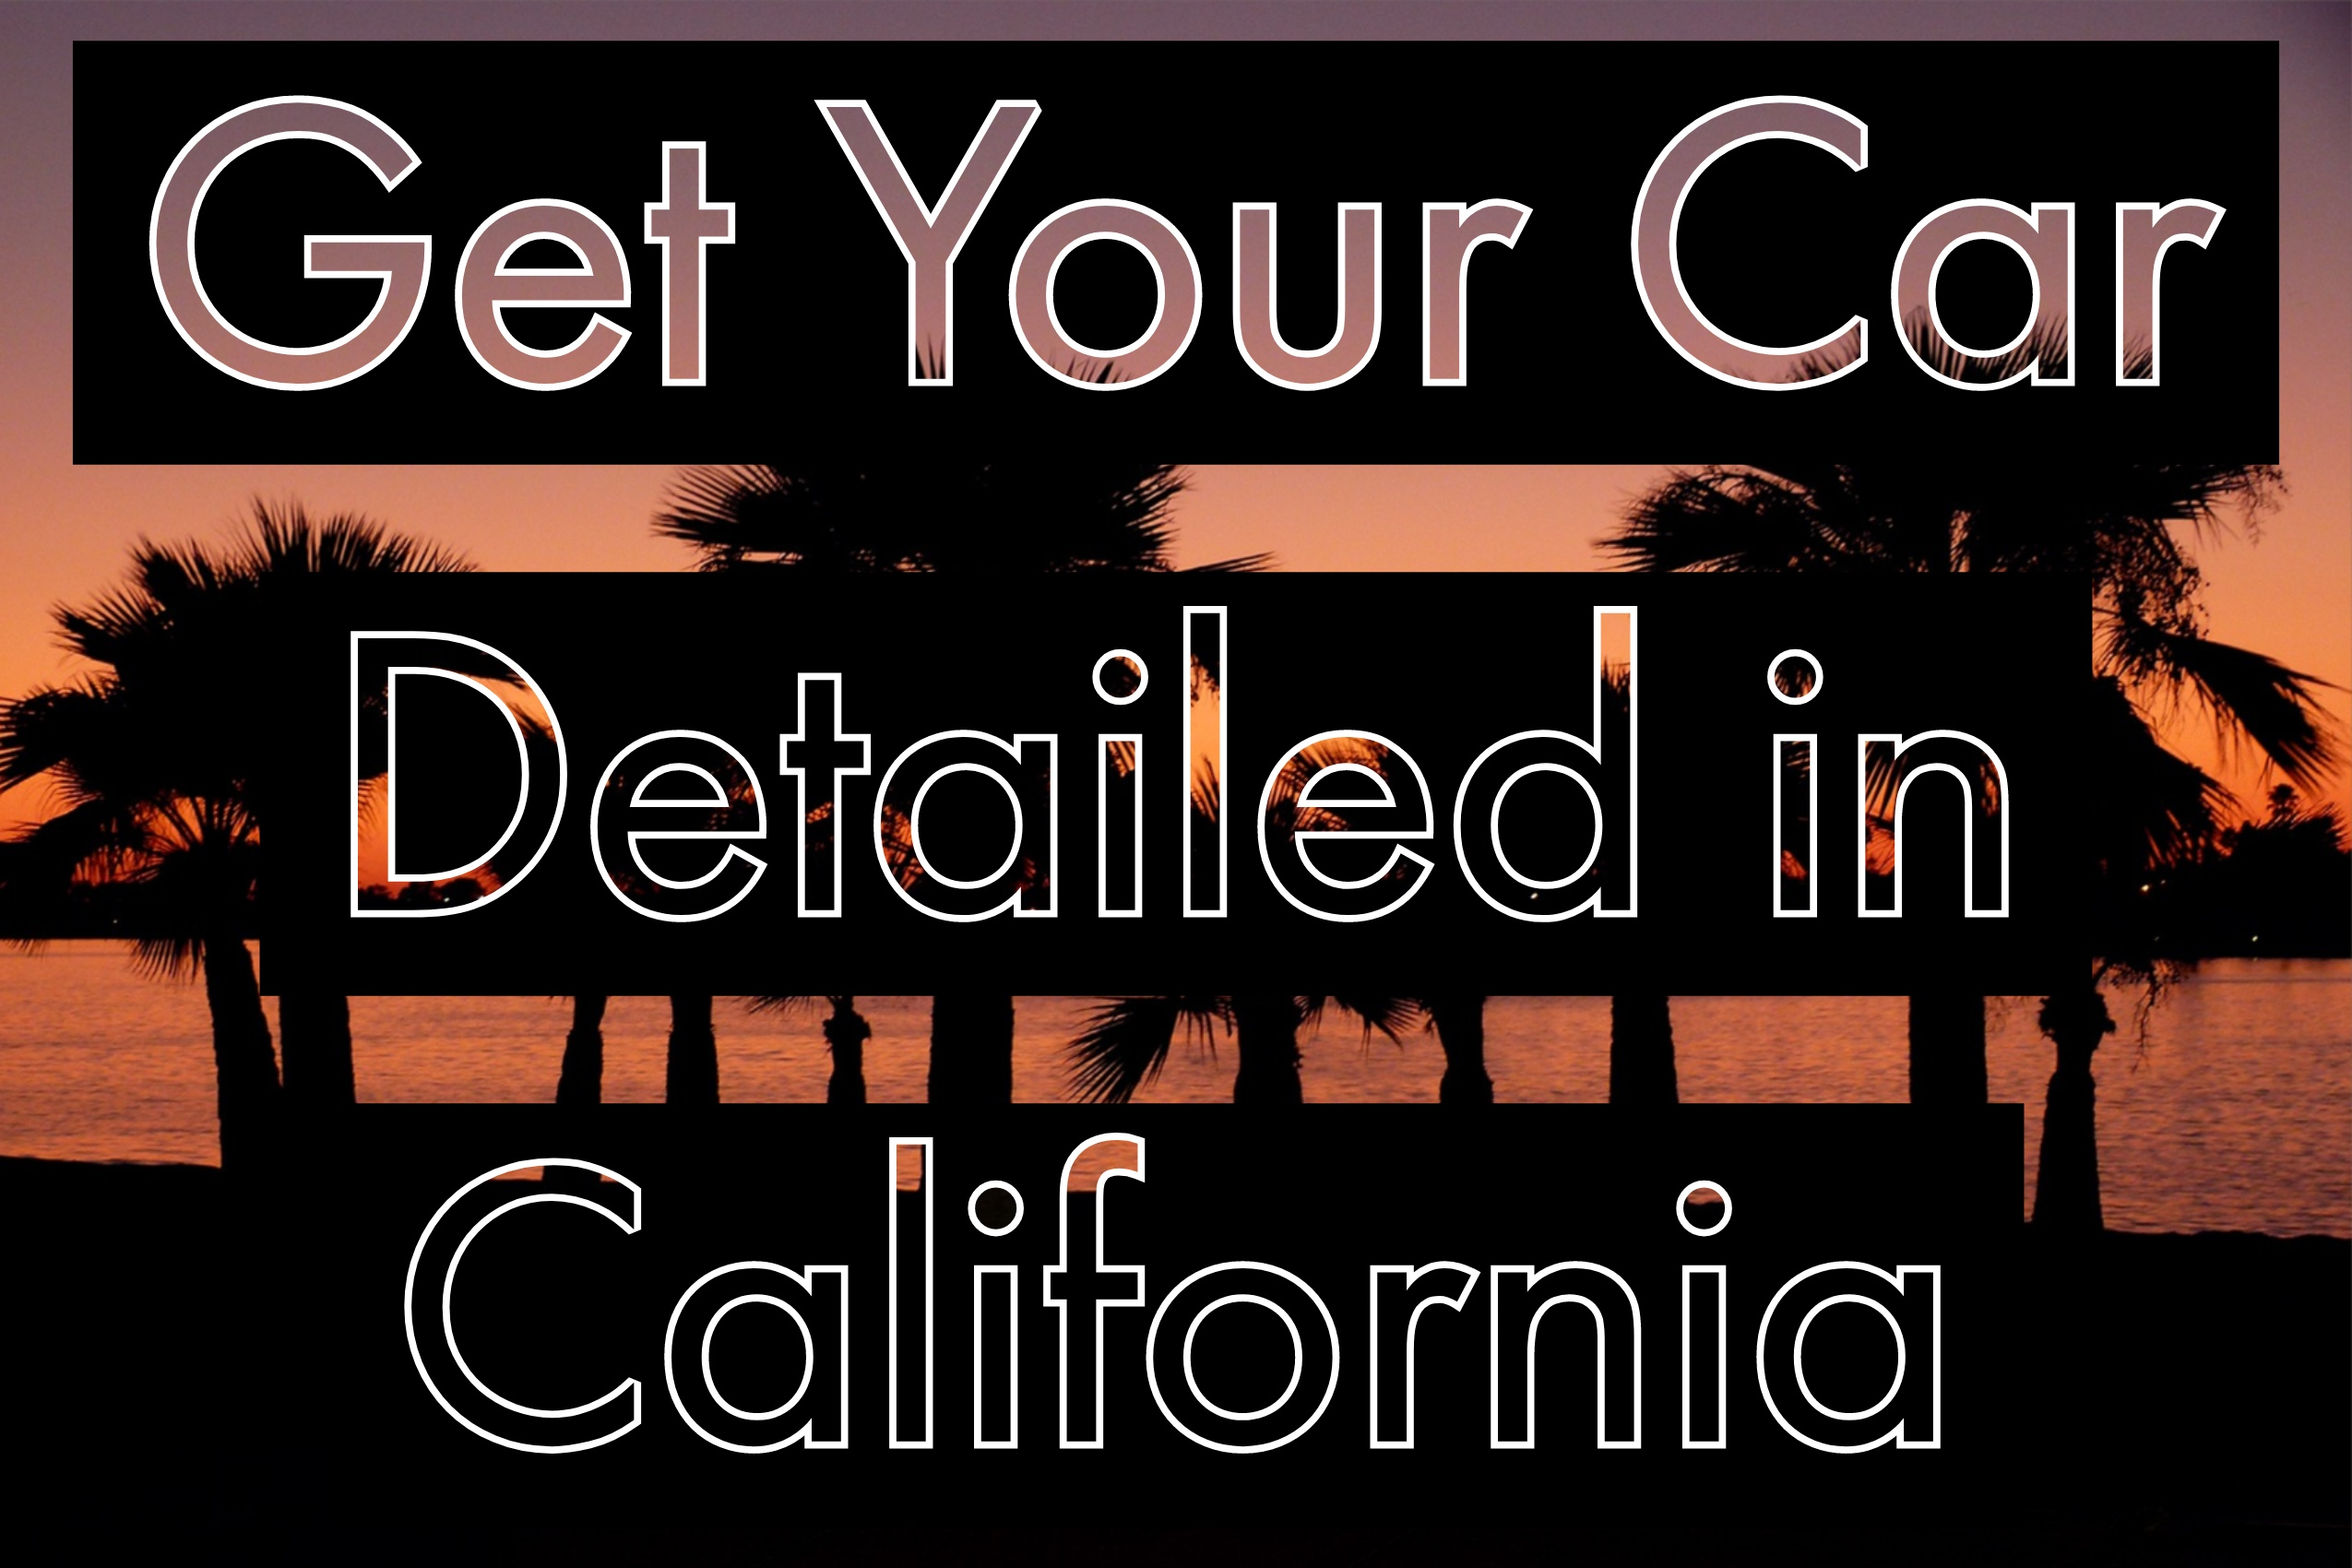 Get Your Car Detailed in California on a Budget